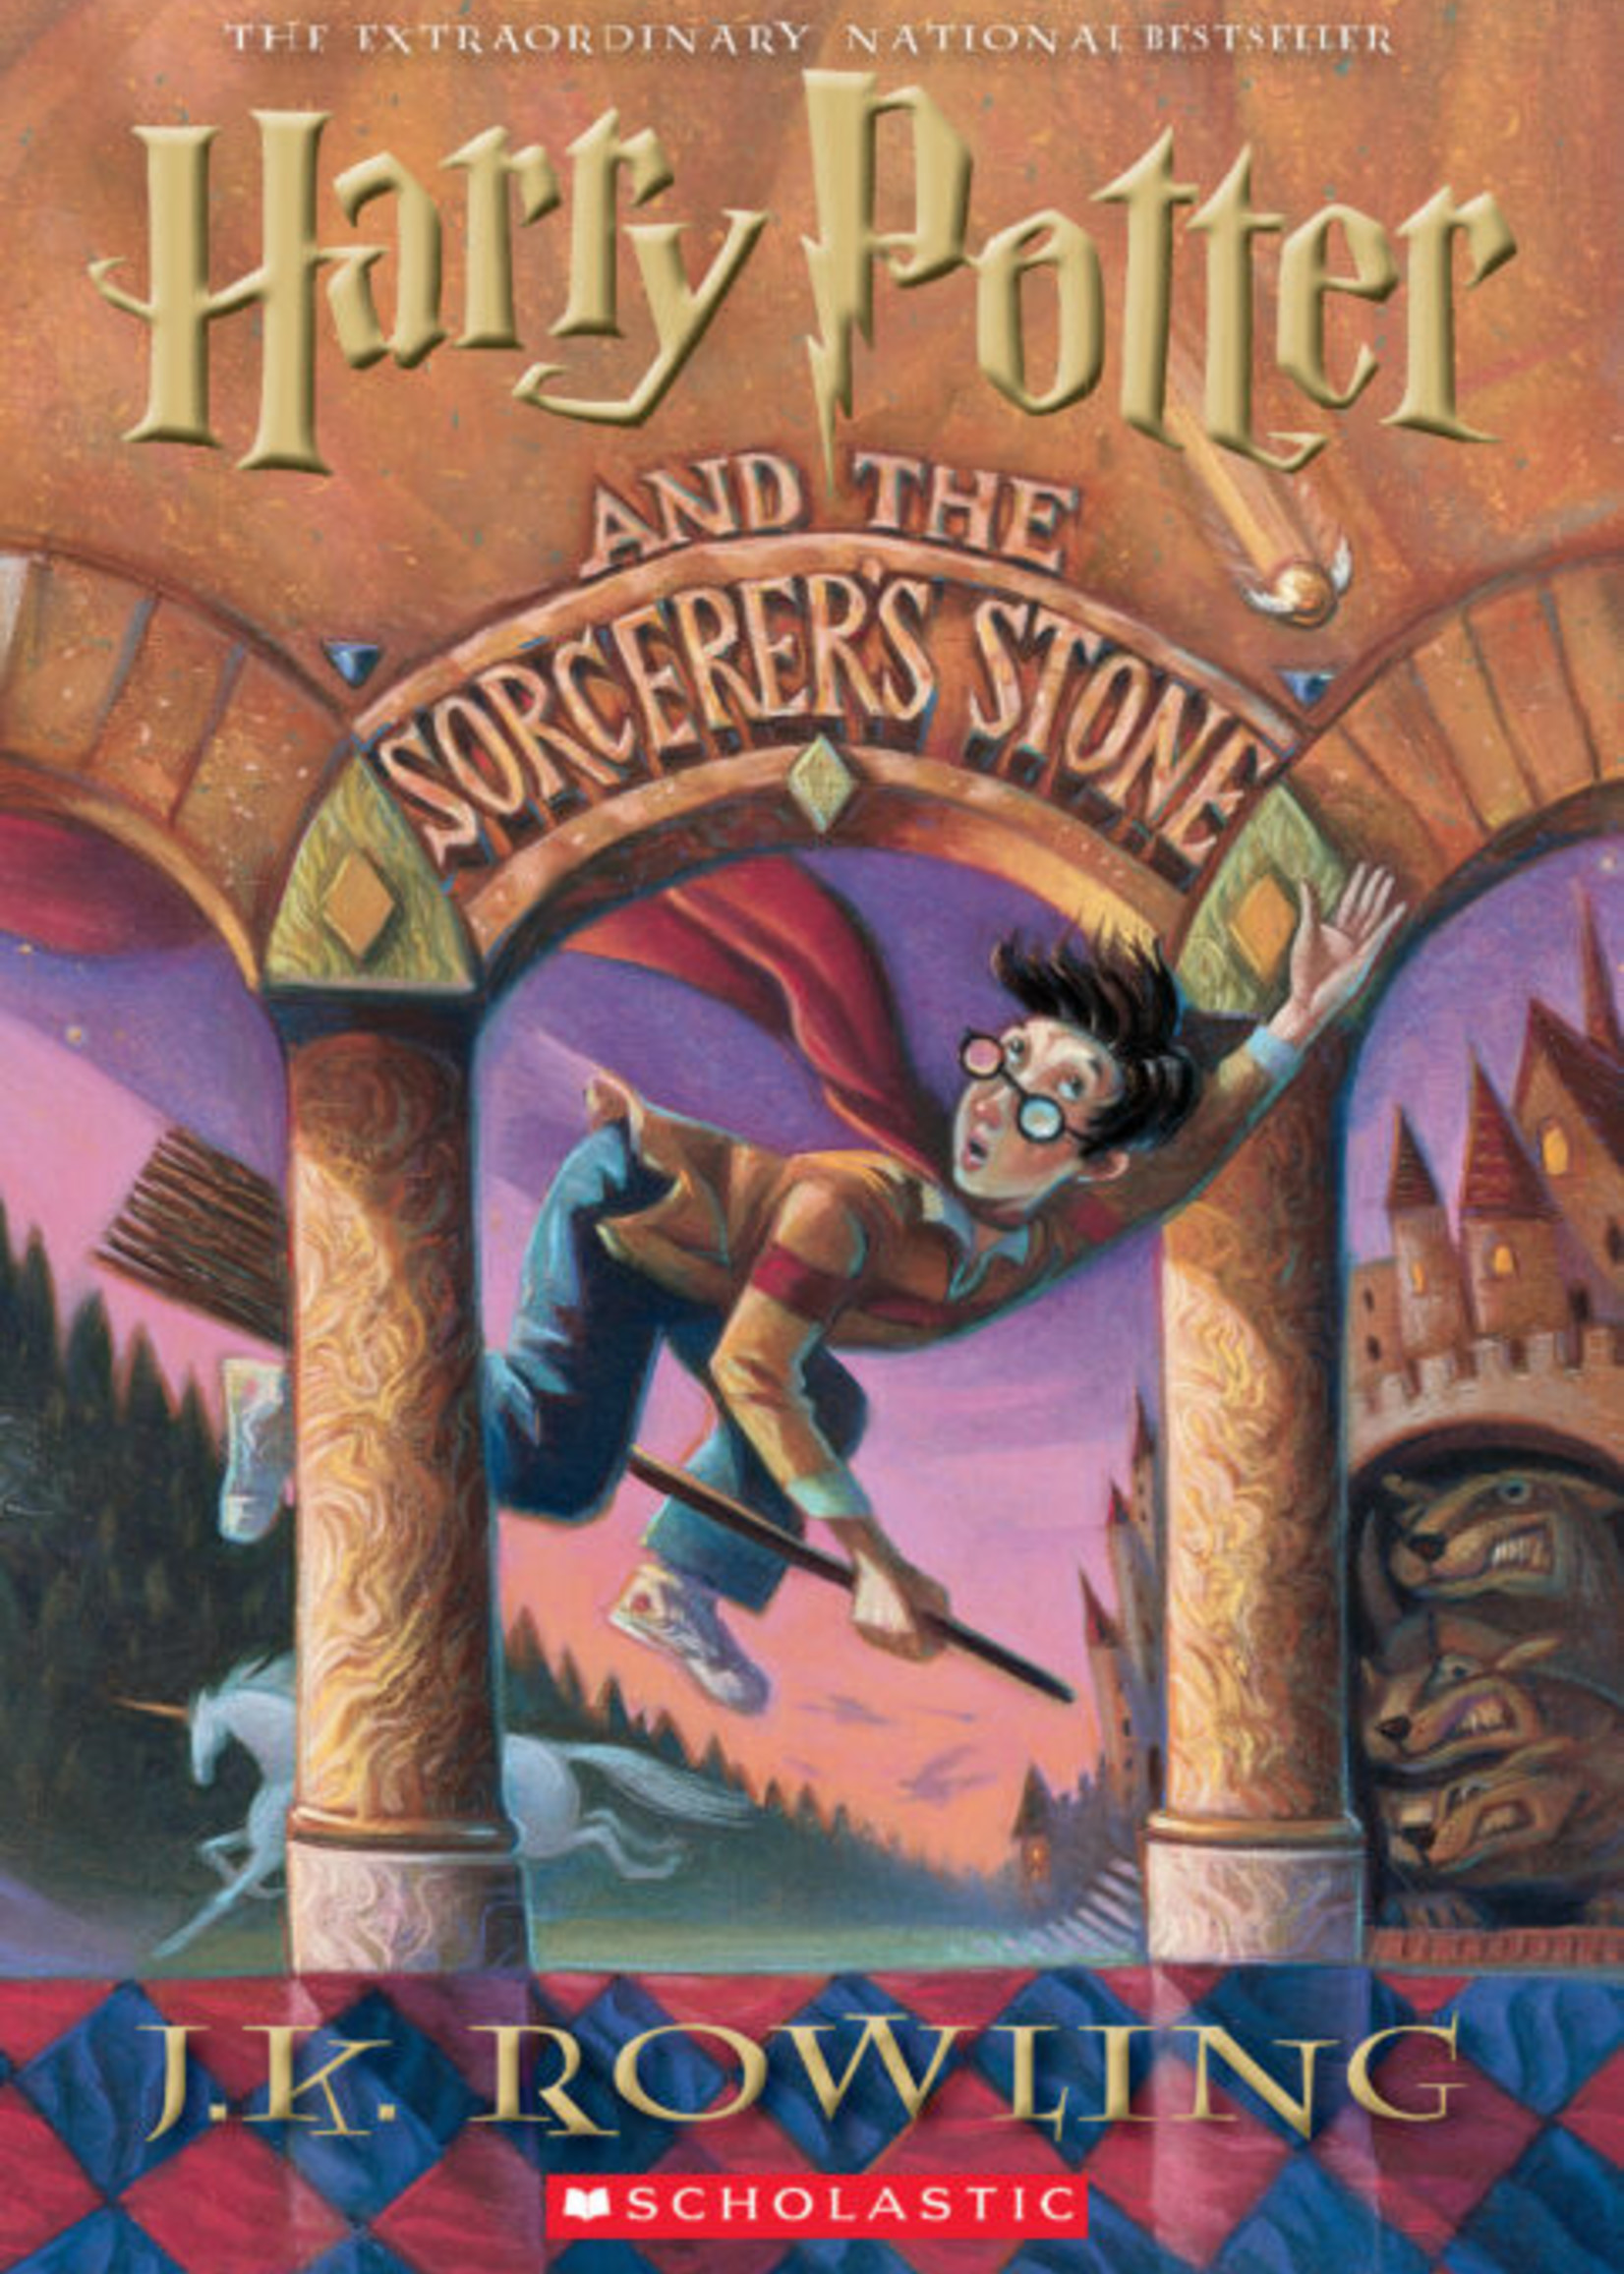 Scholastic Harry Potter #01, Harry Potter and the Sorcerer's Stone - PB